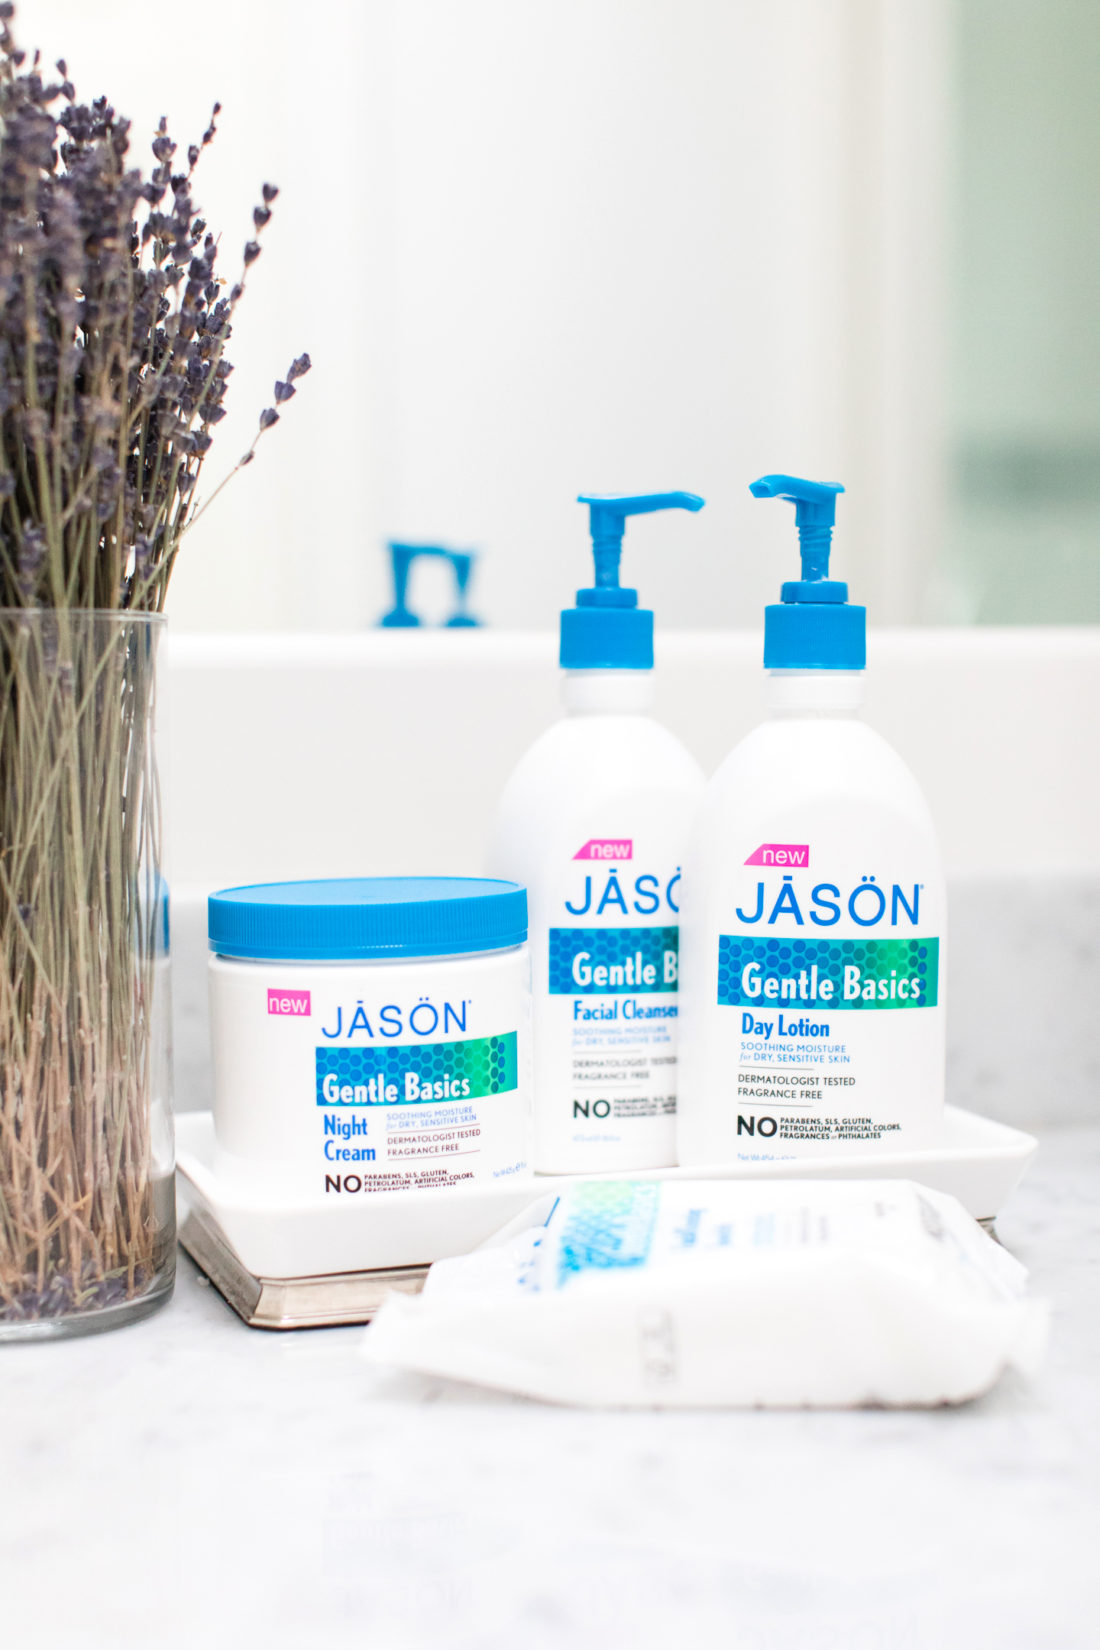 Eva Amurri Martino's selection of Jason Gentle Basics skin care is arranged on the marble countertop in her master bathroom